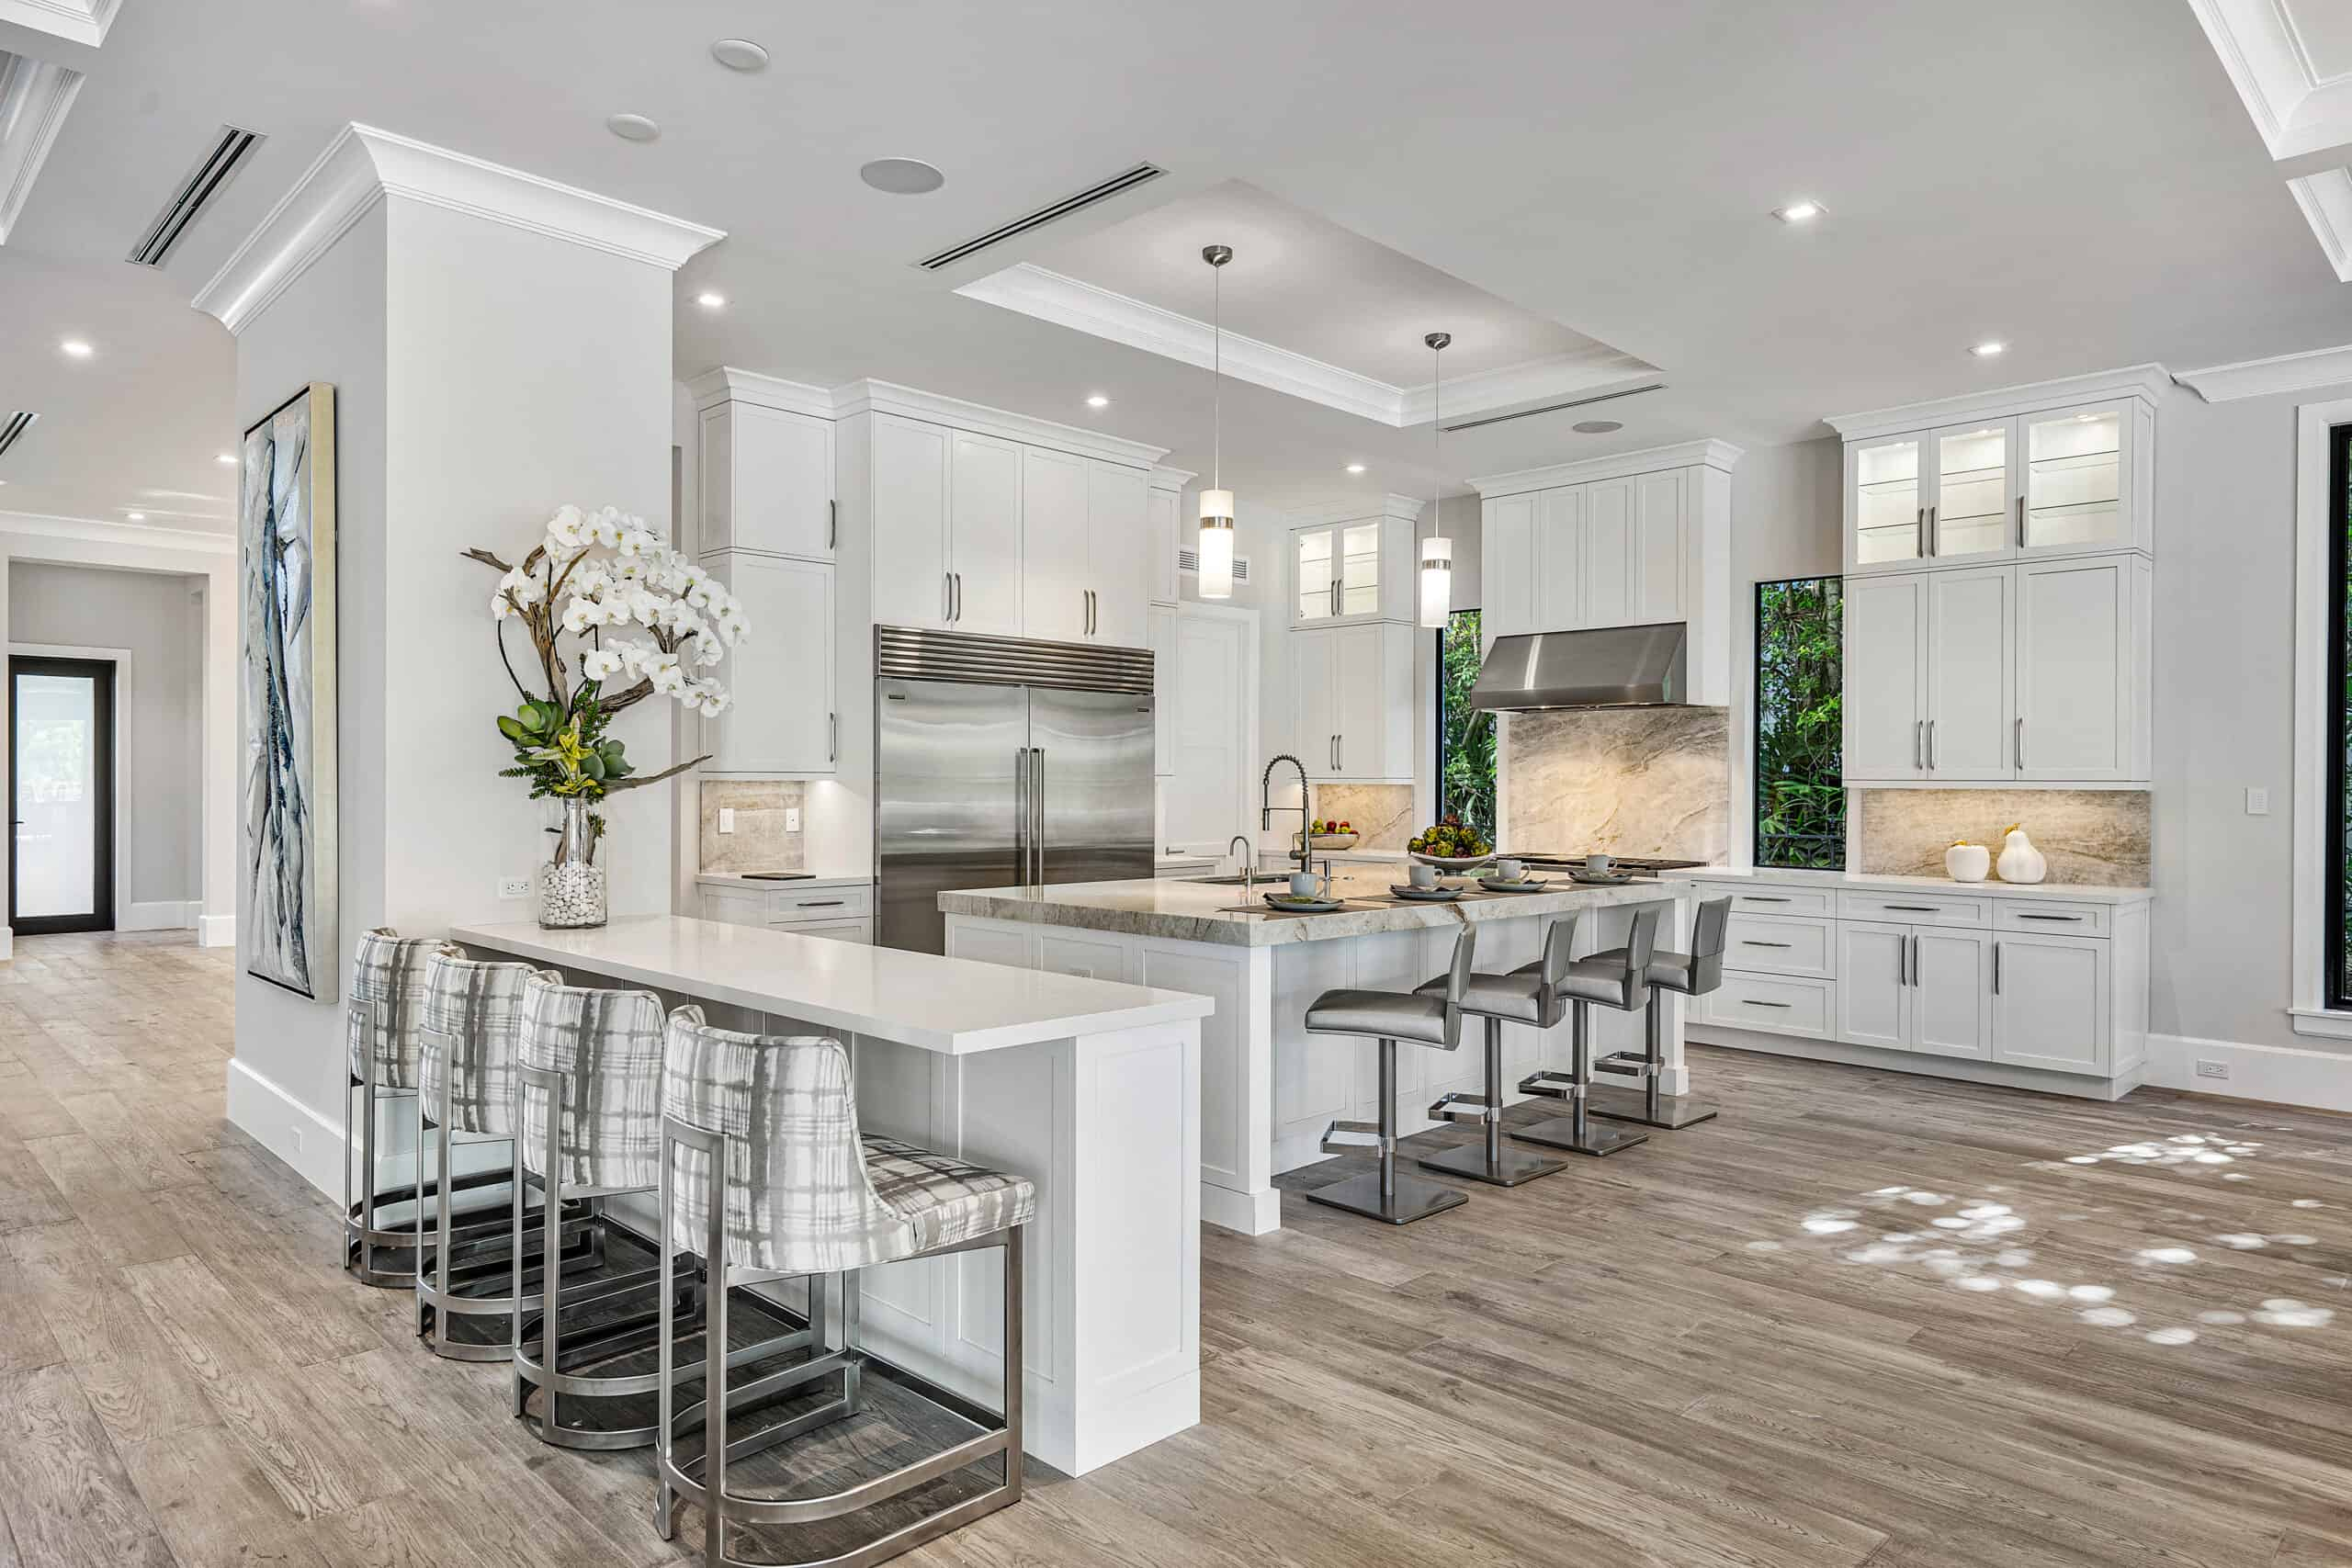 Contemporary kitchen design in Palm Beach County designed by Interiors by Brown